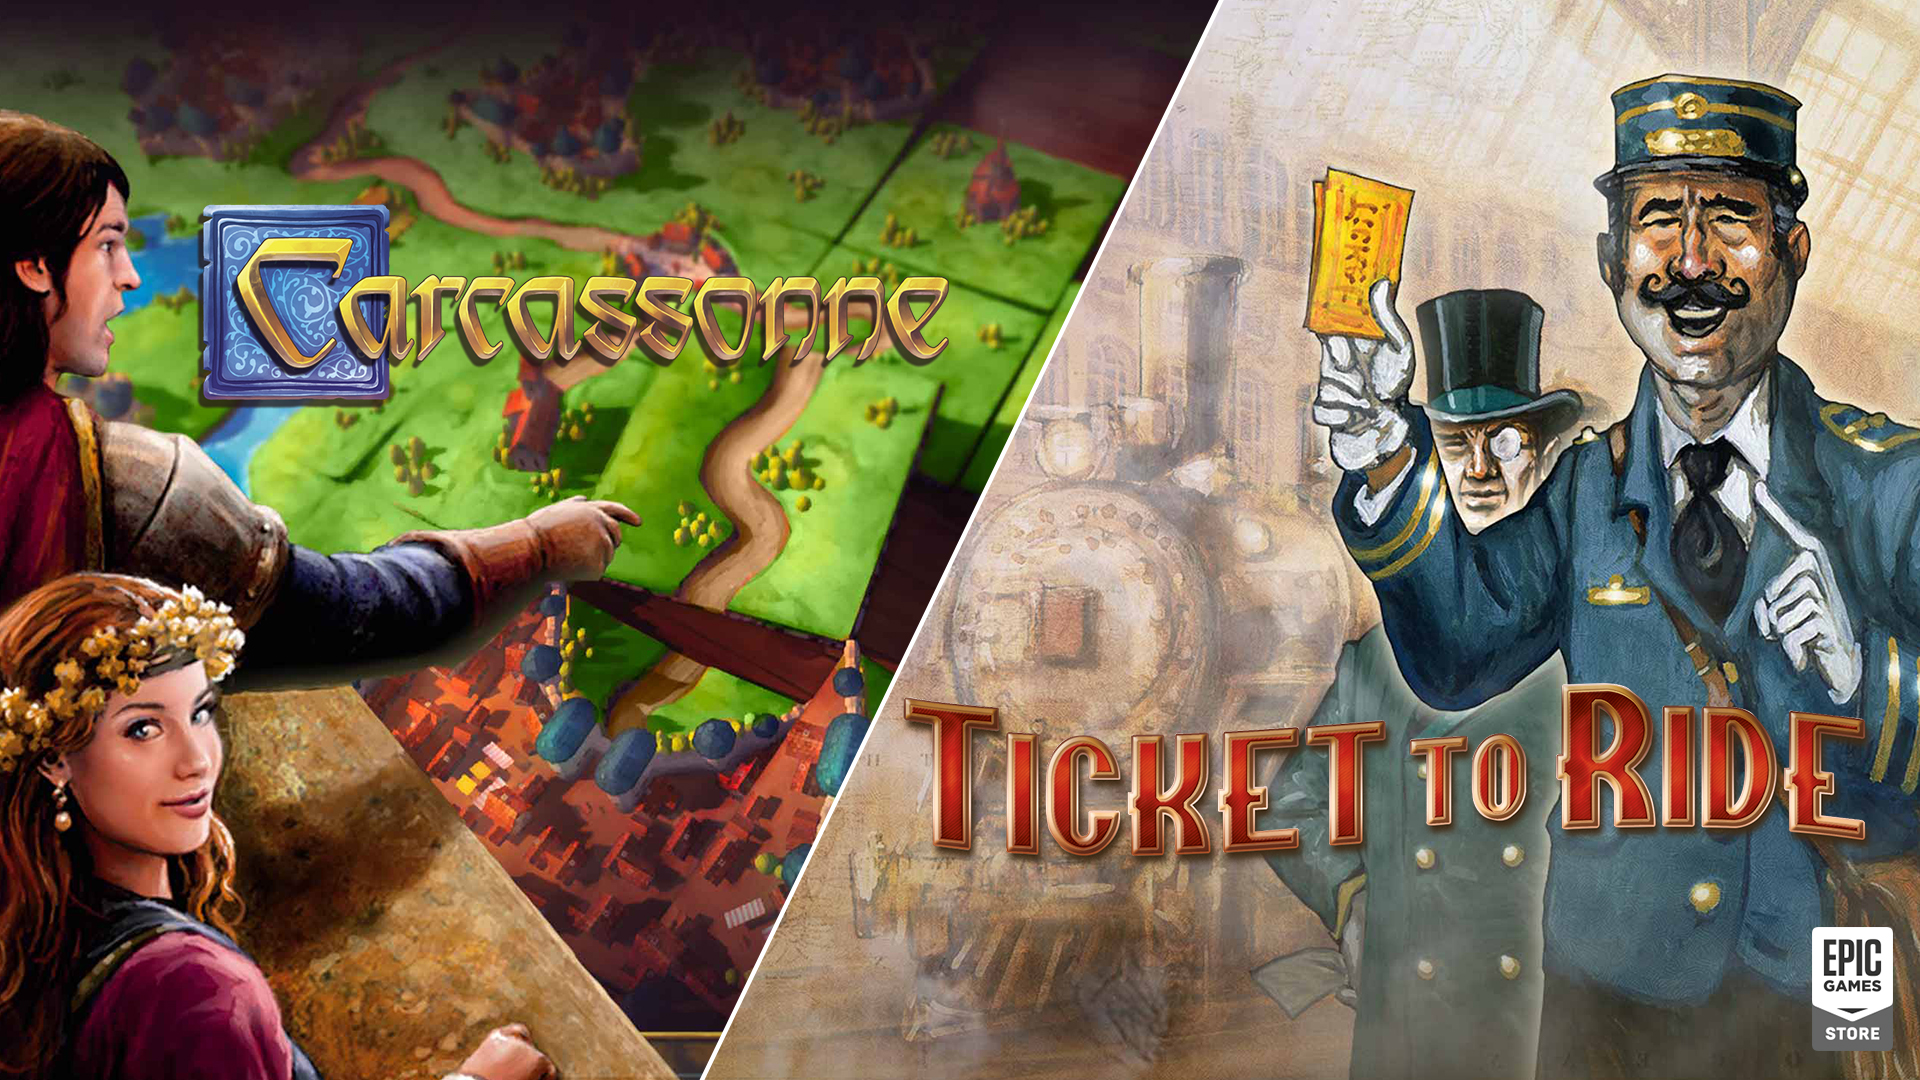 epic-games-store-ticket-ride-carcassonne